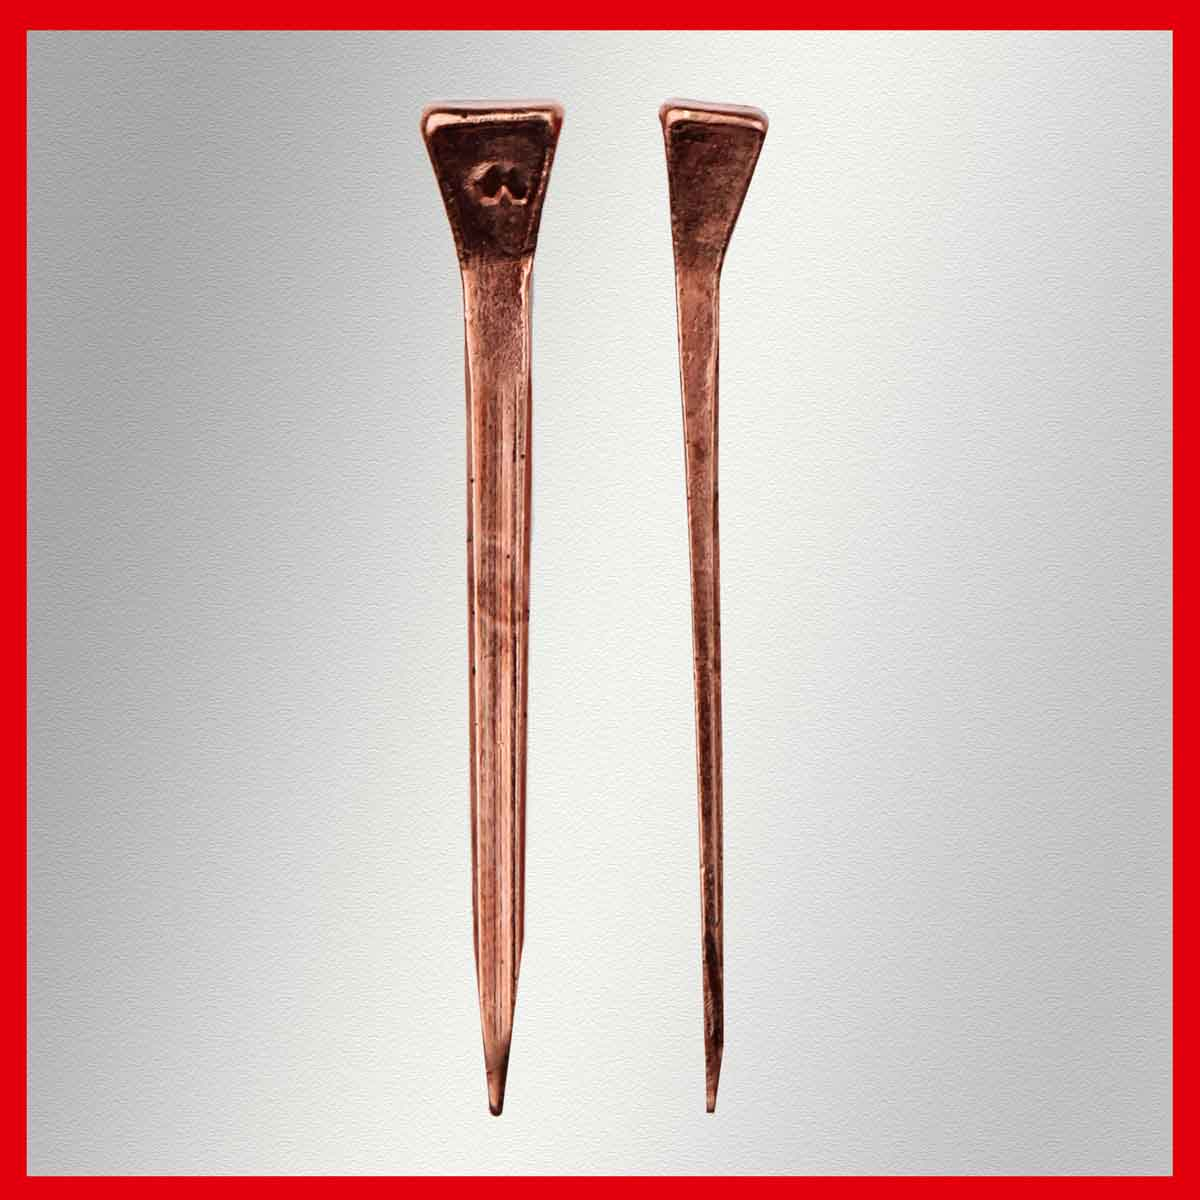 Mustad Copper Concave Nail